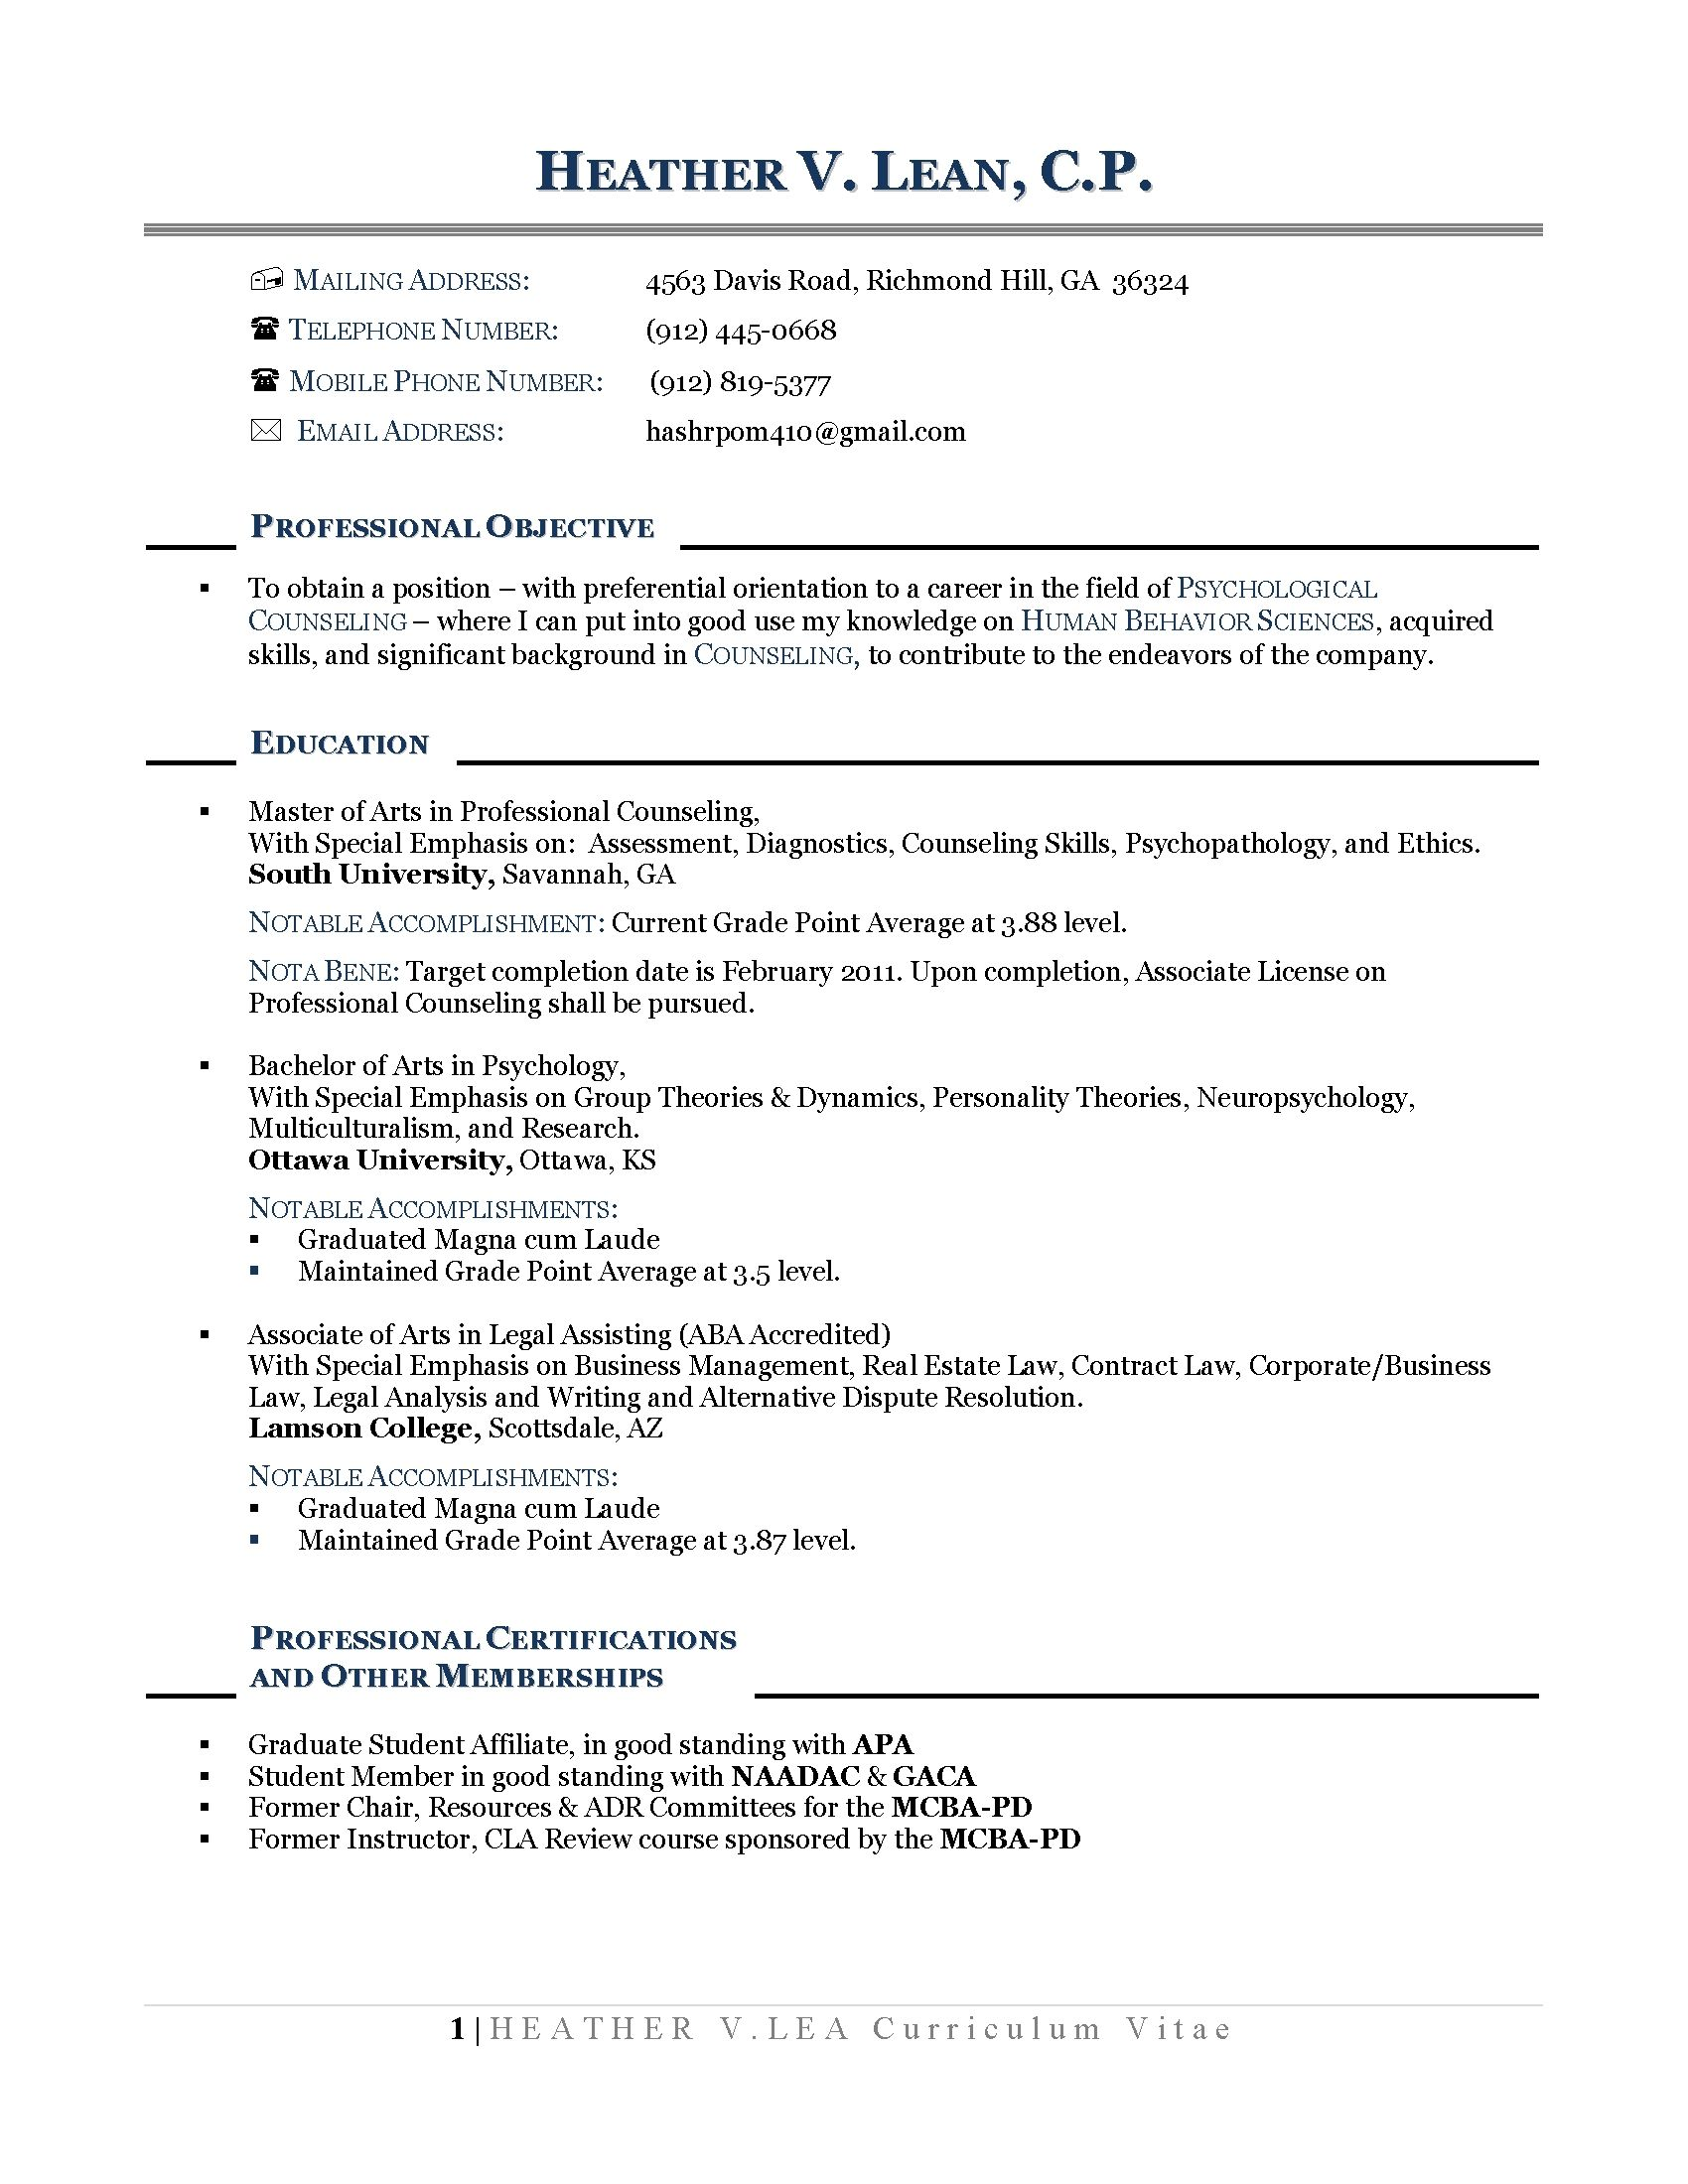 Associate Attorney Resume Cool Resume Examples Career Change  Pinterest  Resume Examples And Change